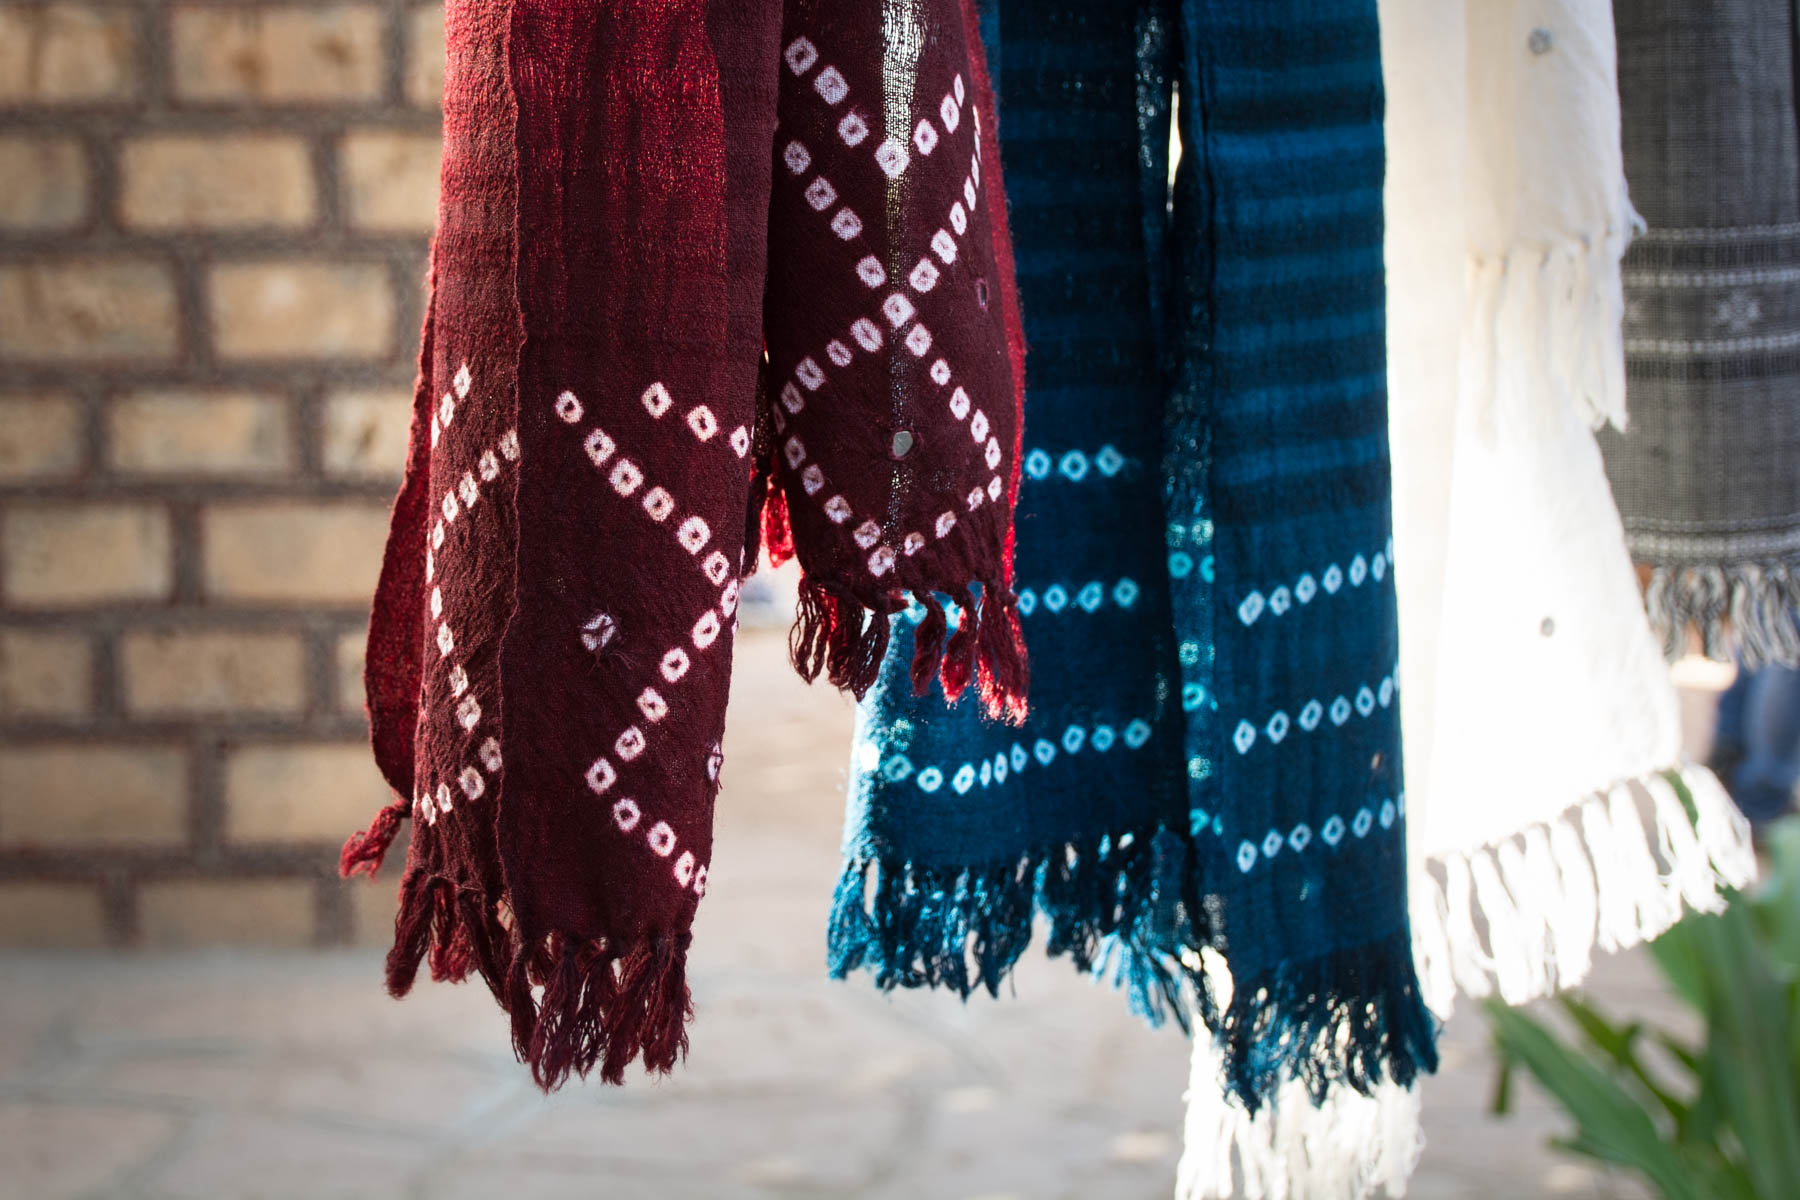 Textiles and crafts of Kutch, Gujarat, India - Bandhani fabric for sale in Bhujodi, Gujarat, India - Lost With Purpose